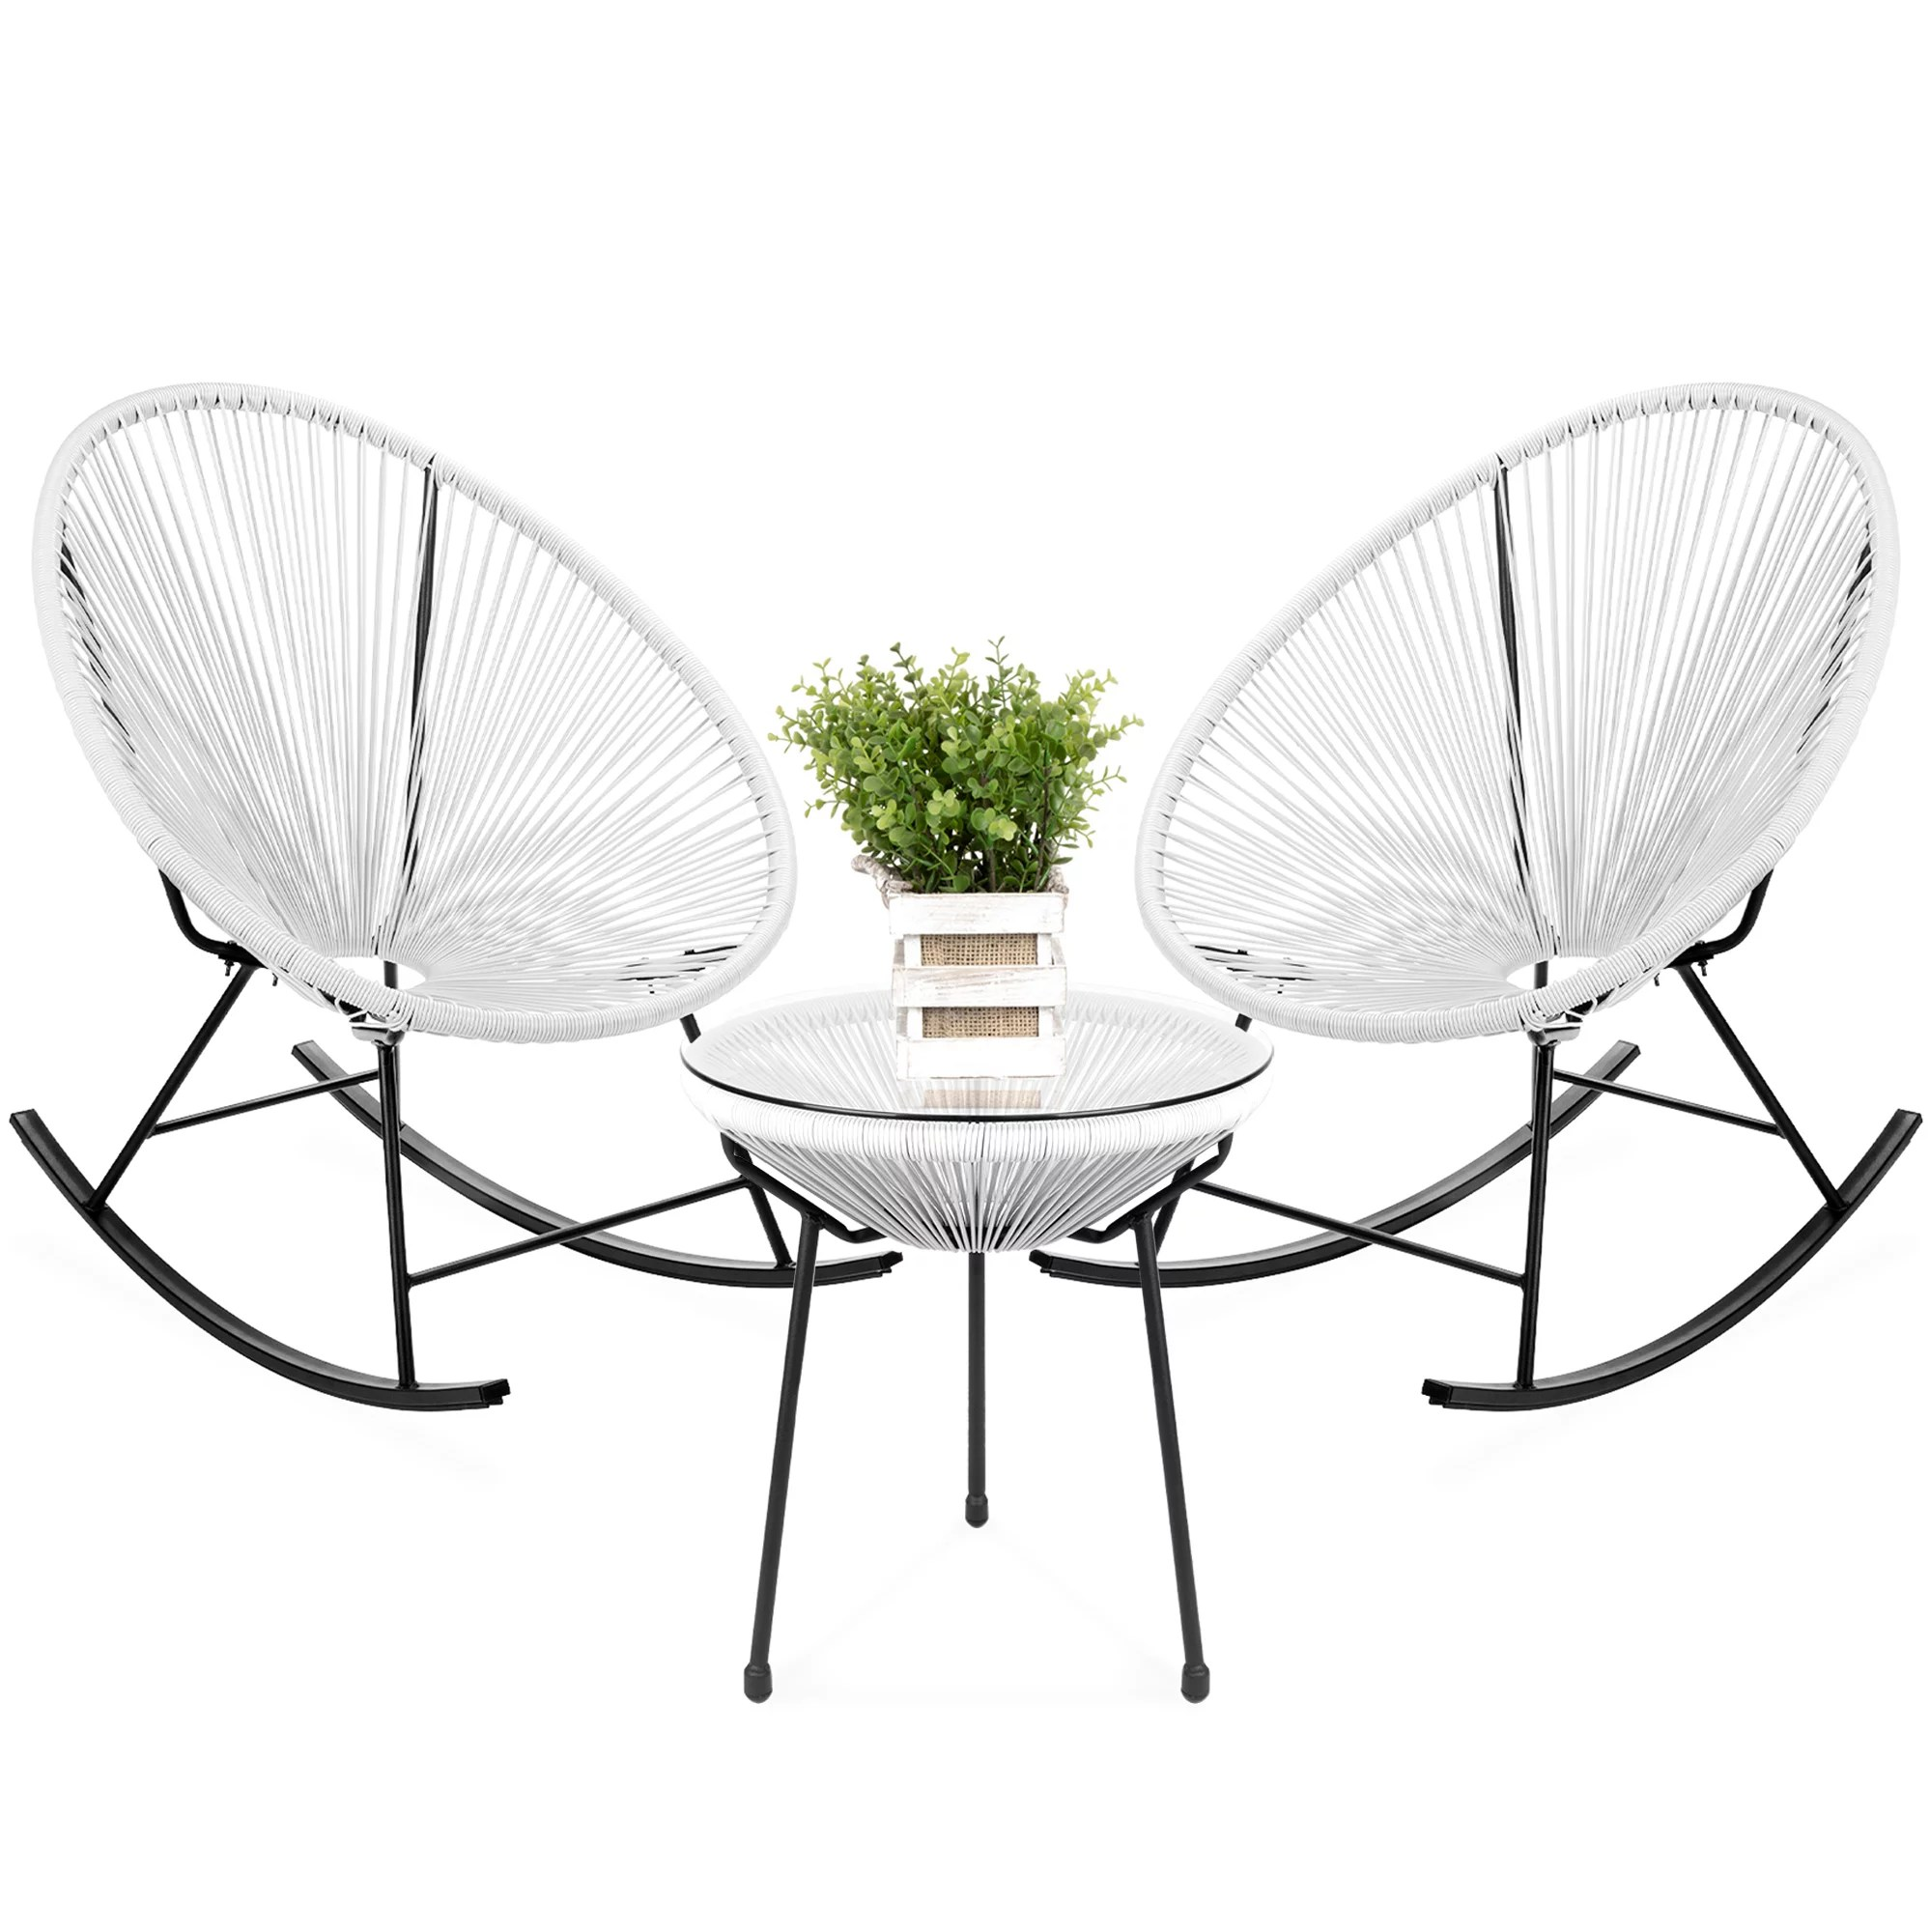 Best Choice Products 3 Piece All Weather Patio Woven Rope Acapulco Bistro Furniture Set W Rocking Chairs Table White Walmart Com Walmart Com